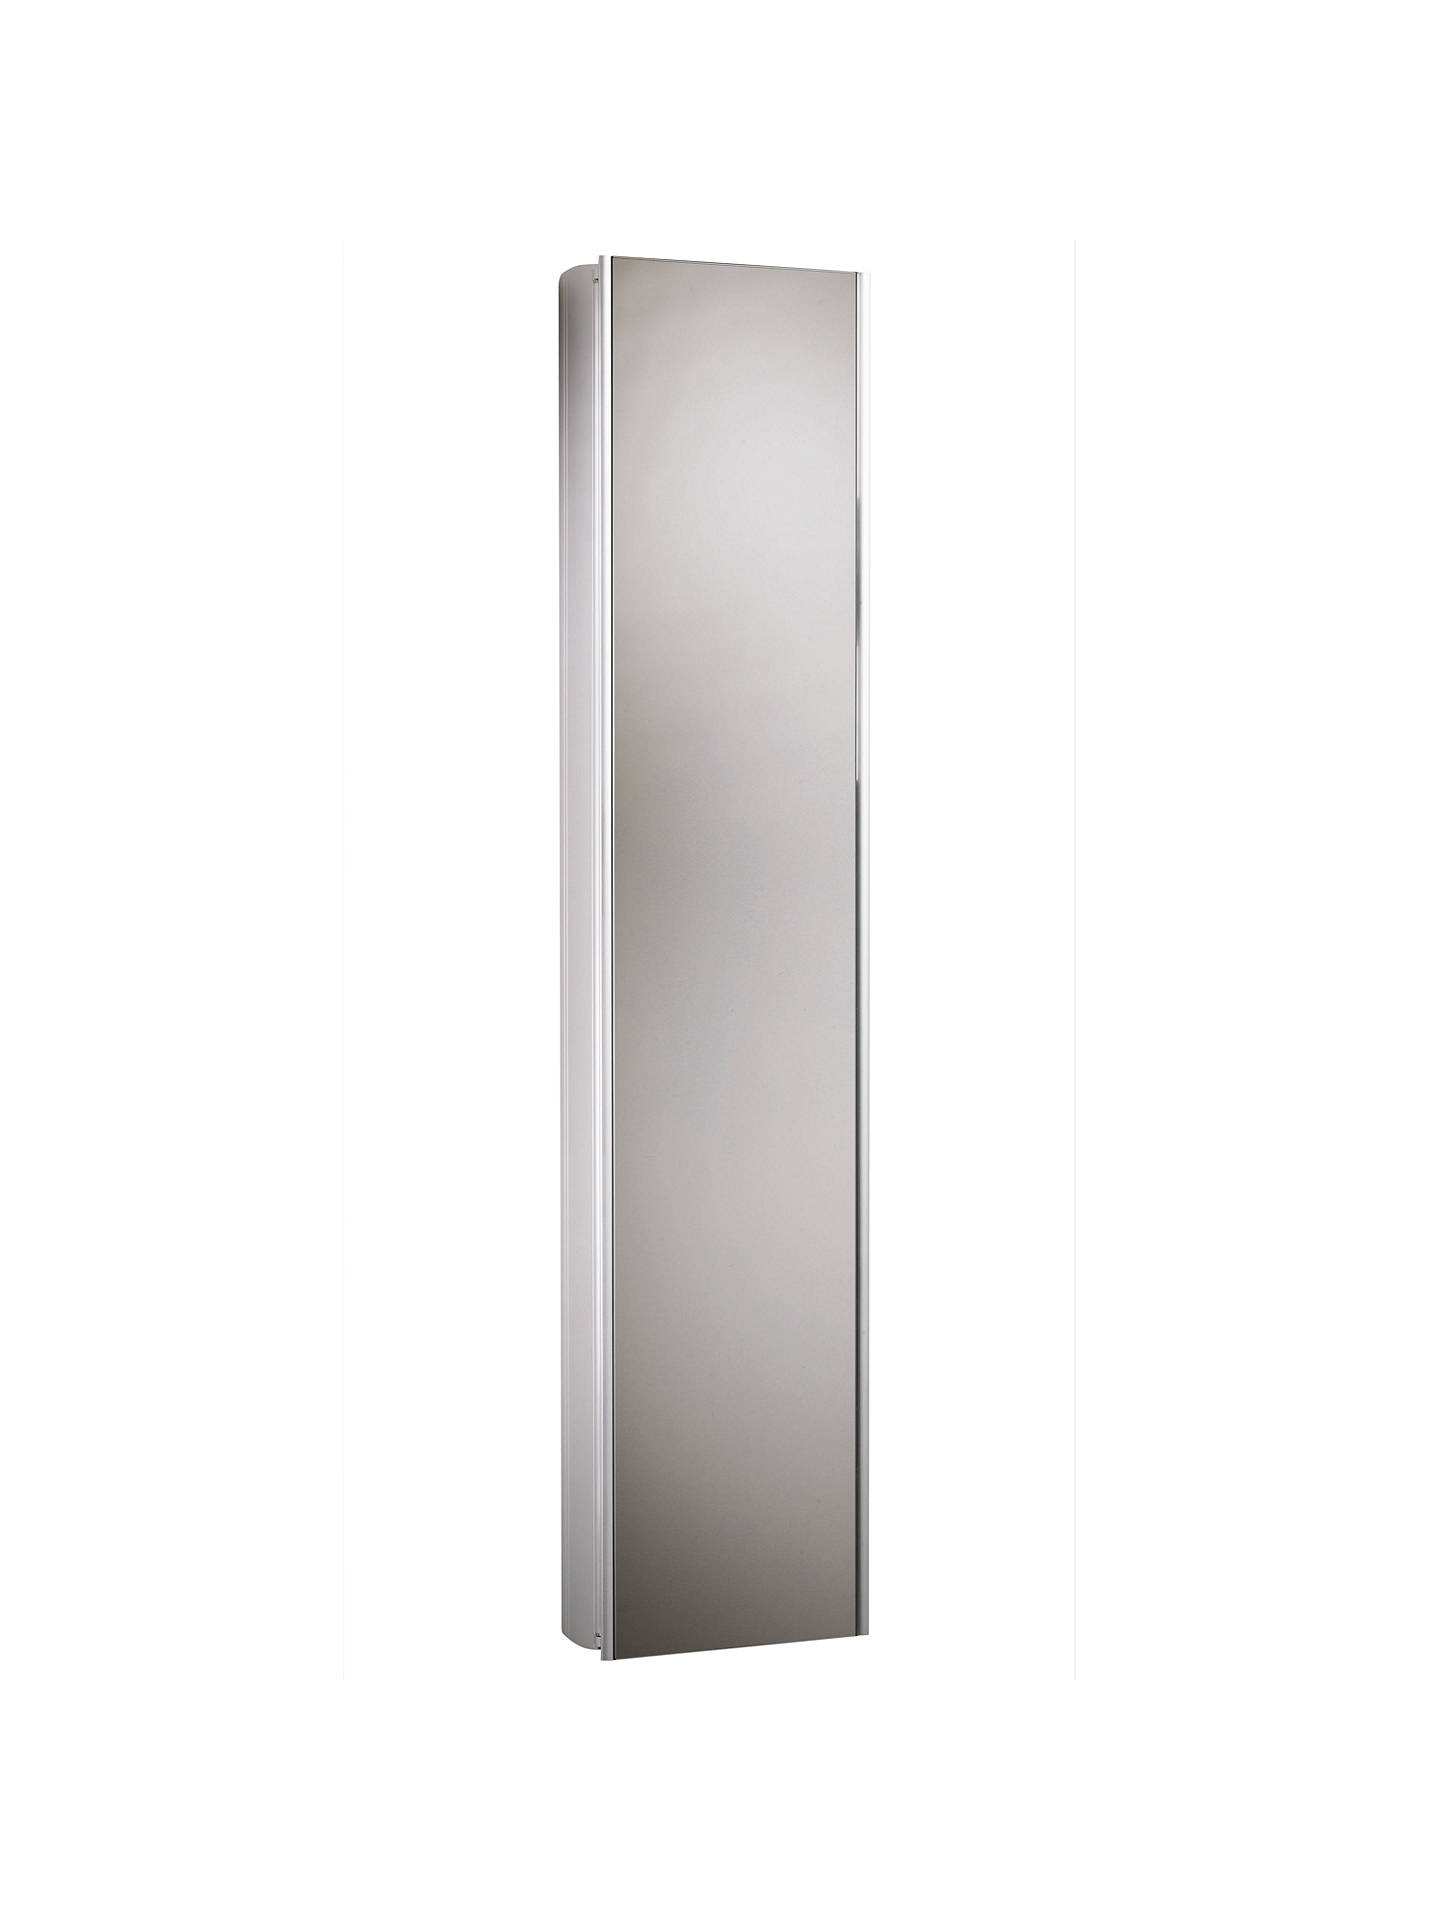 BuyRoper Rhodes Reference Tall Mirrored Bathroom Cabinet Online at johnlewis.com